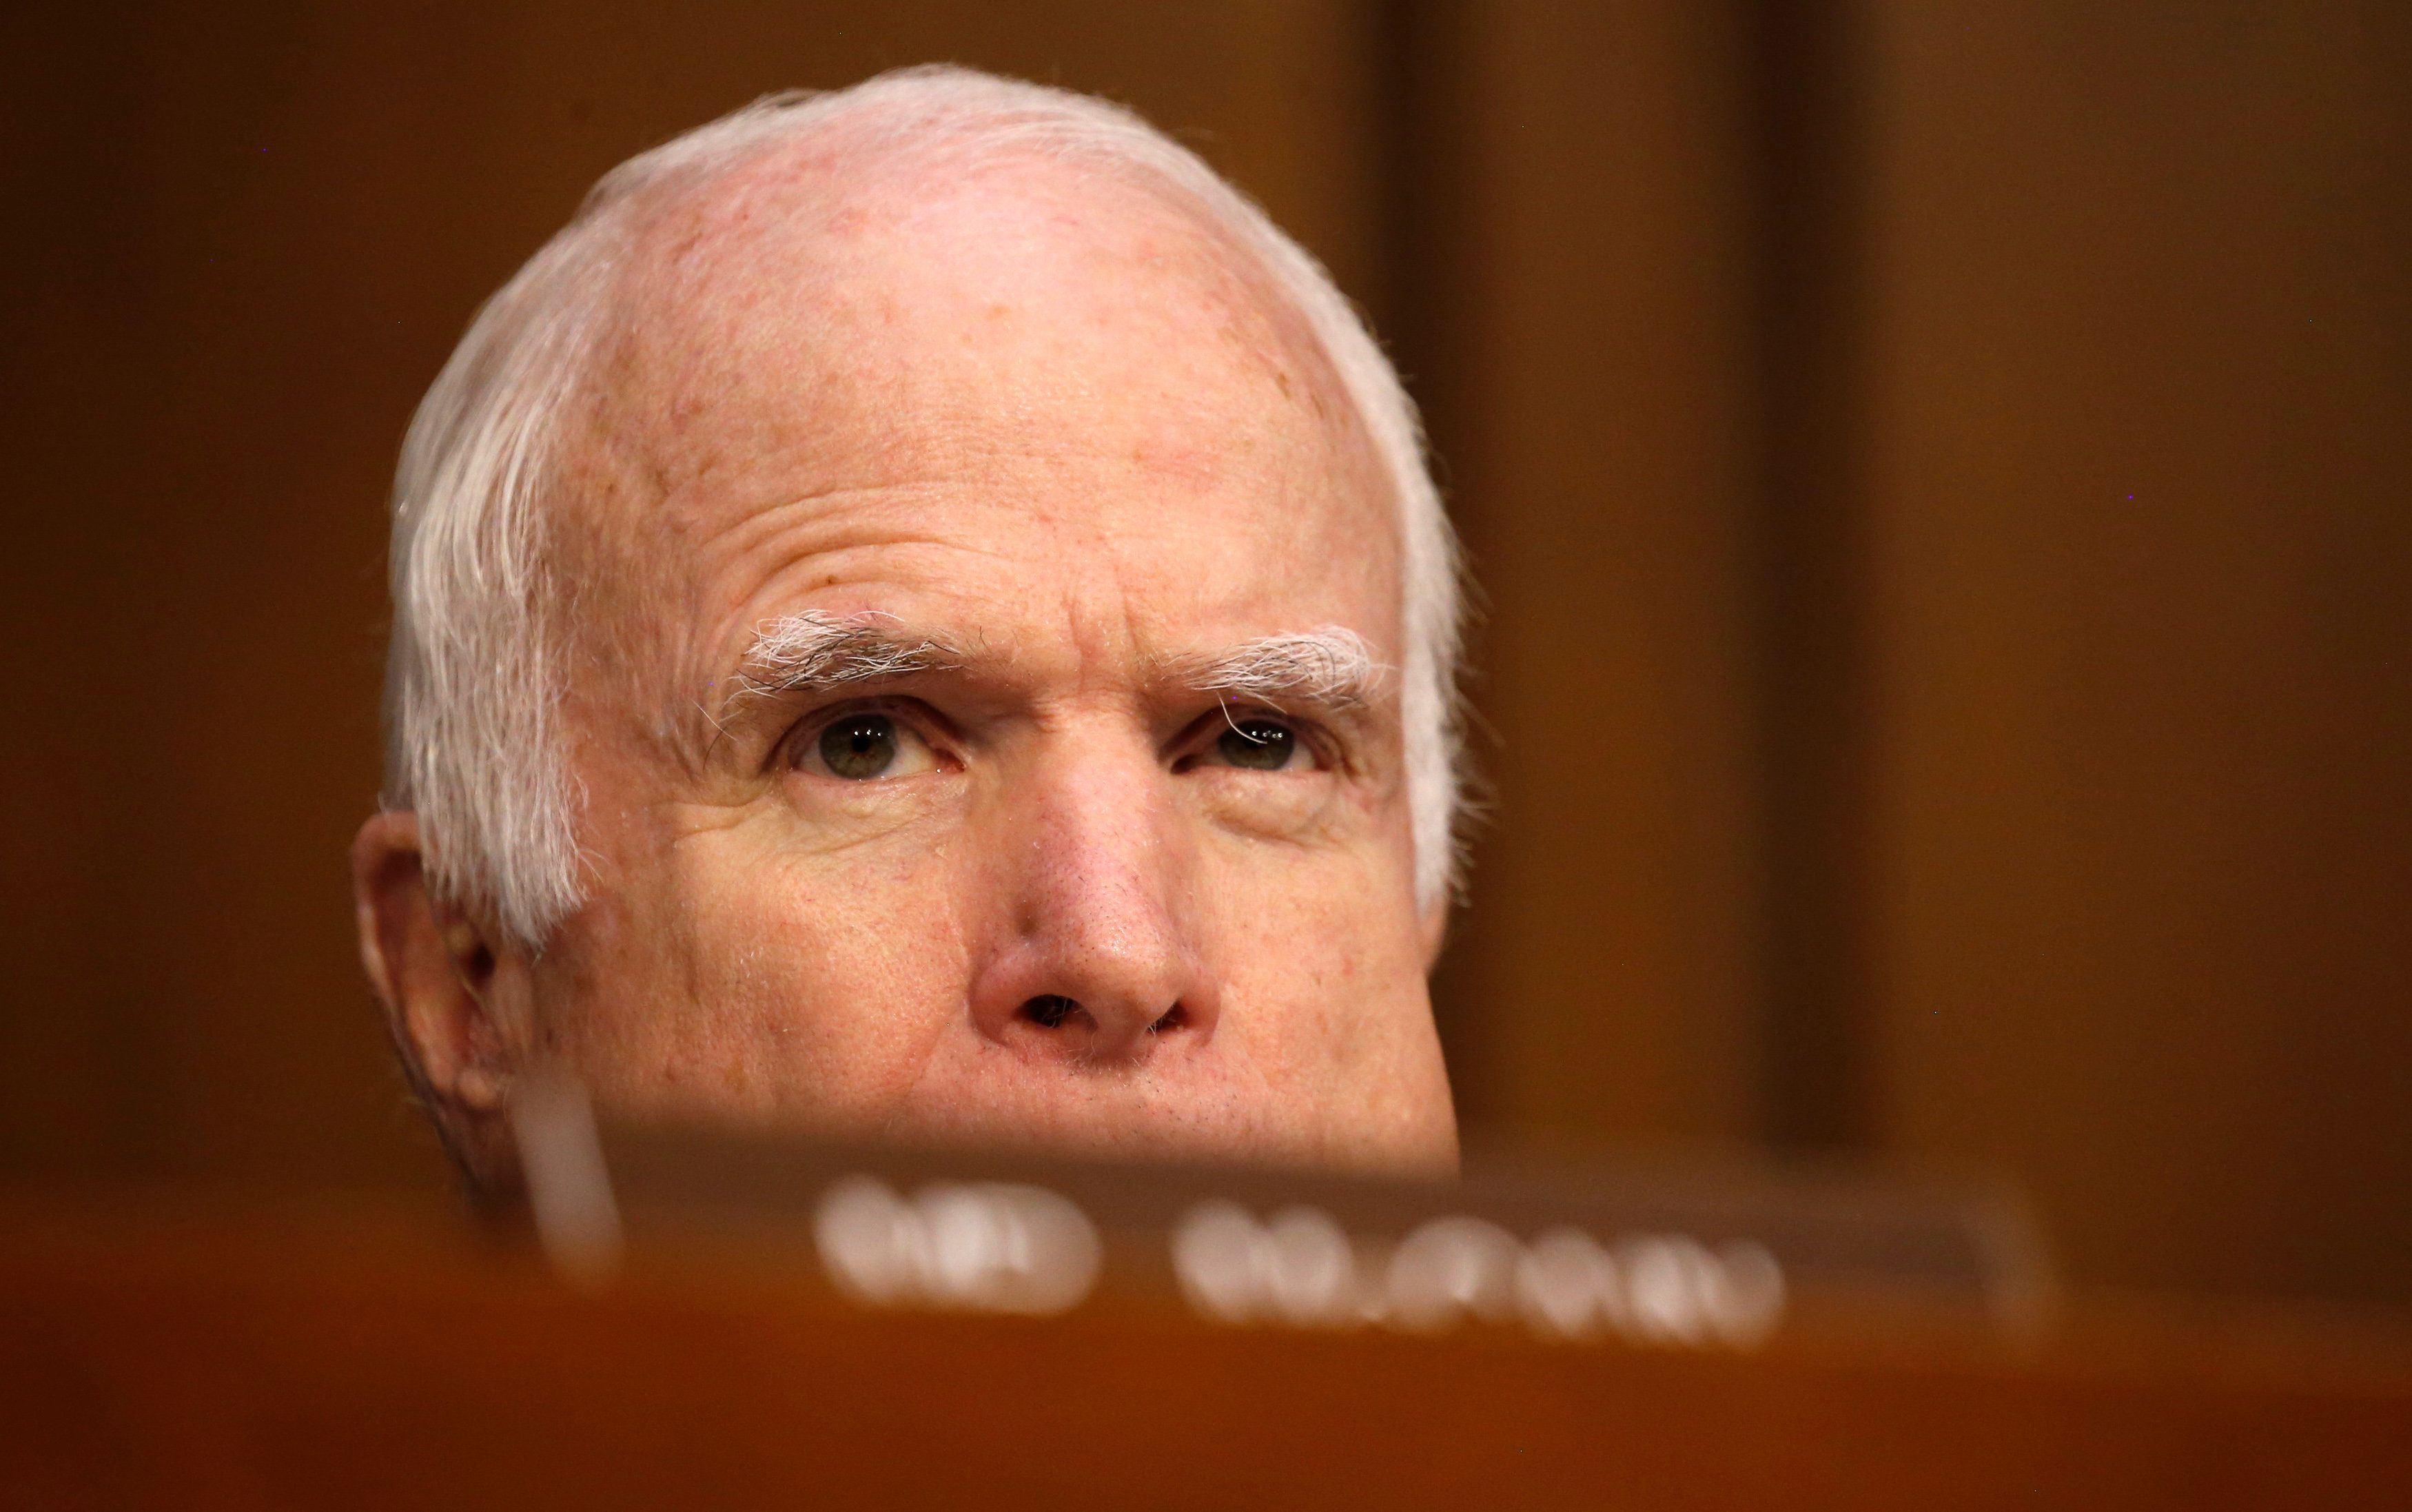 Rather than help pass an ambitious climate plan under Barack Obama, John McCain took his ball and went home.